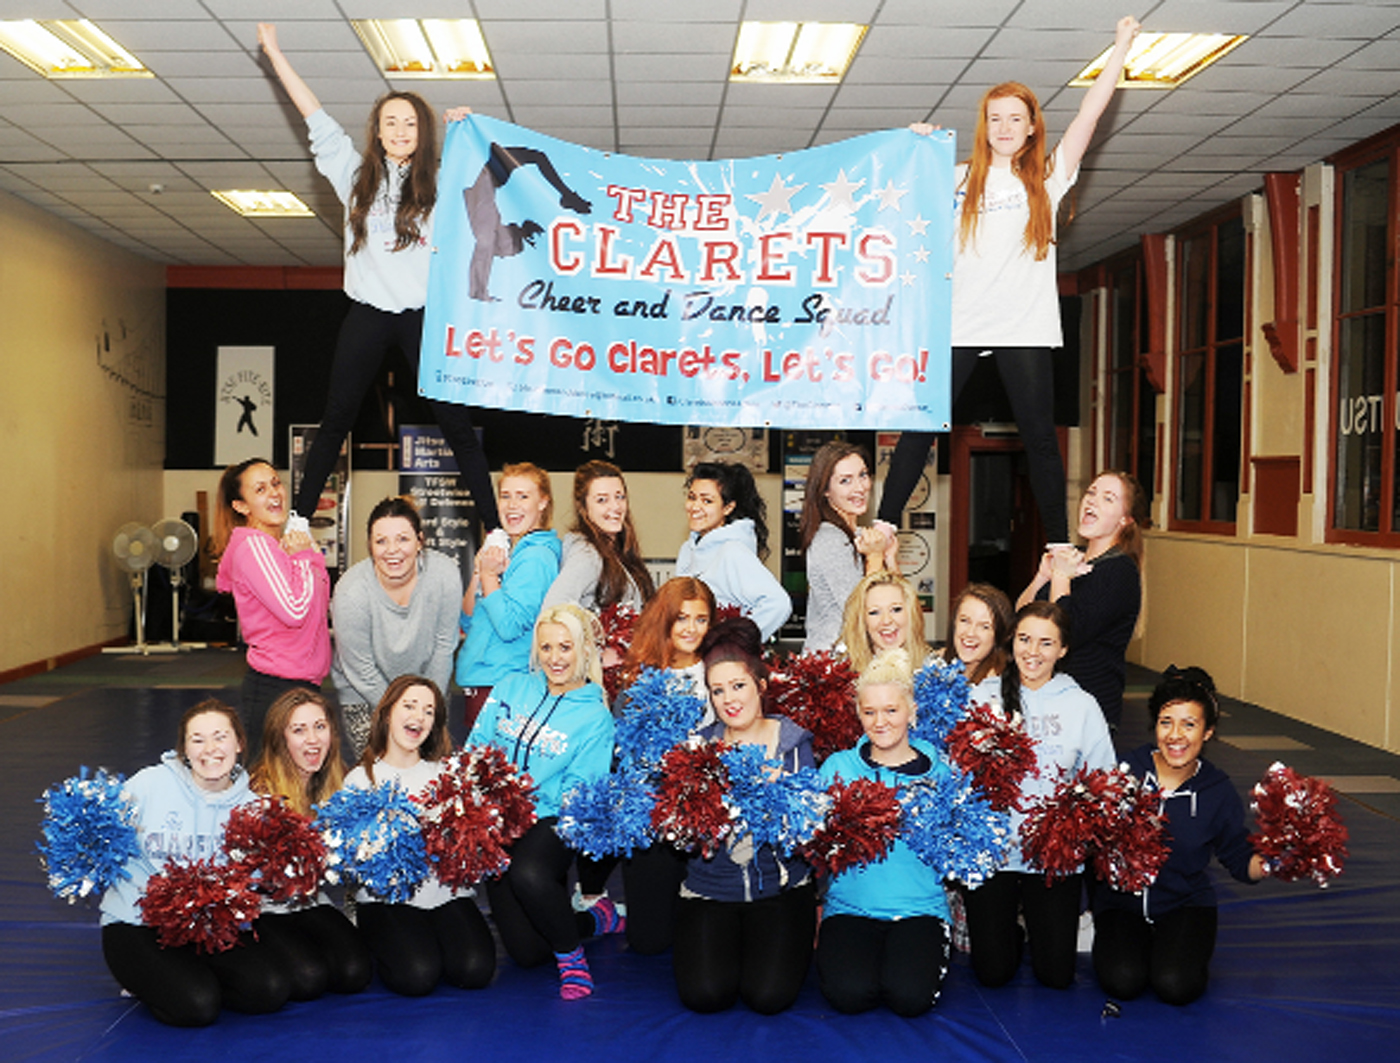 Clarets Cheer and Dance